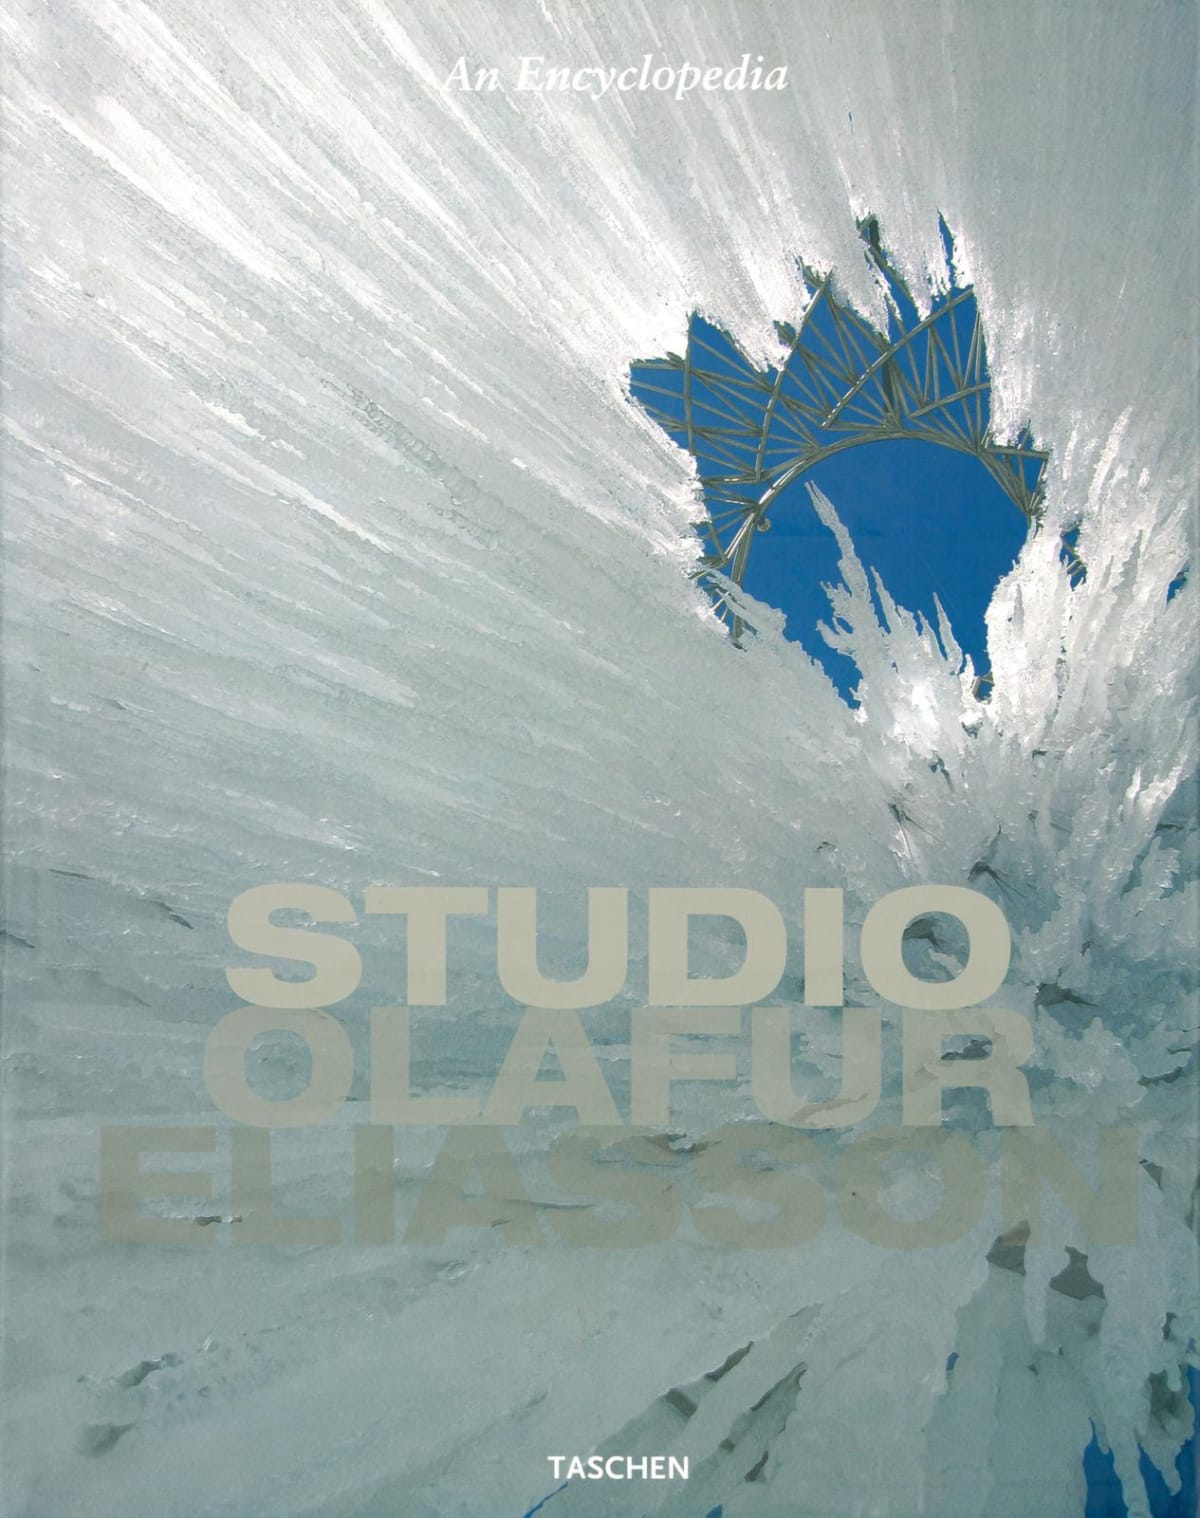 Studio Olafur Eliasson: An Encyclopedia